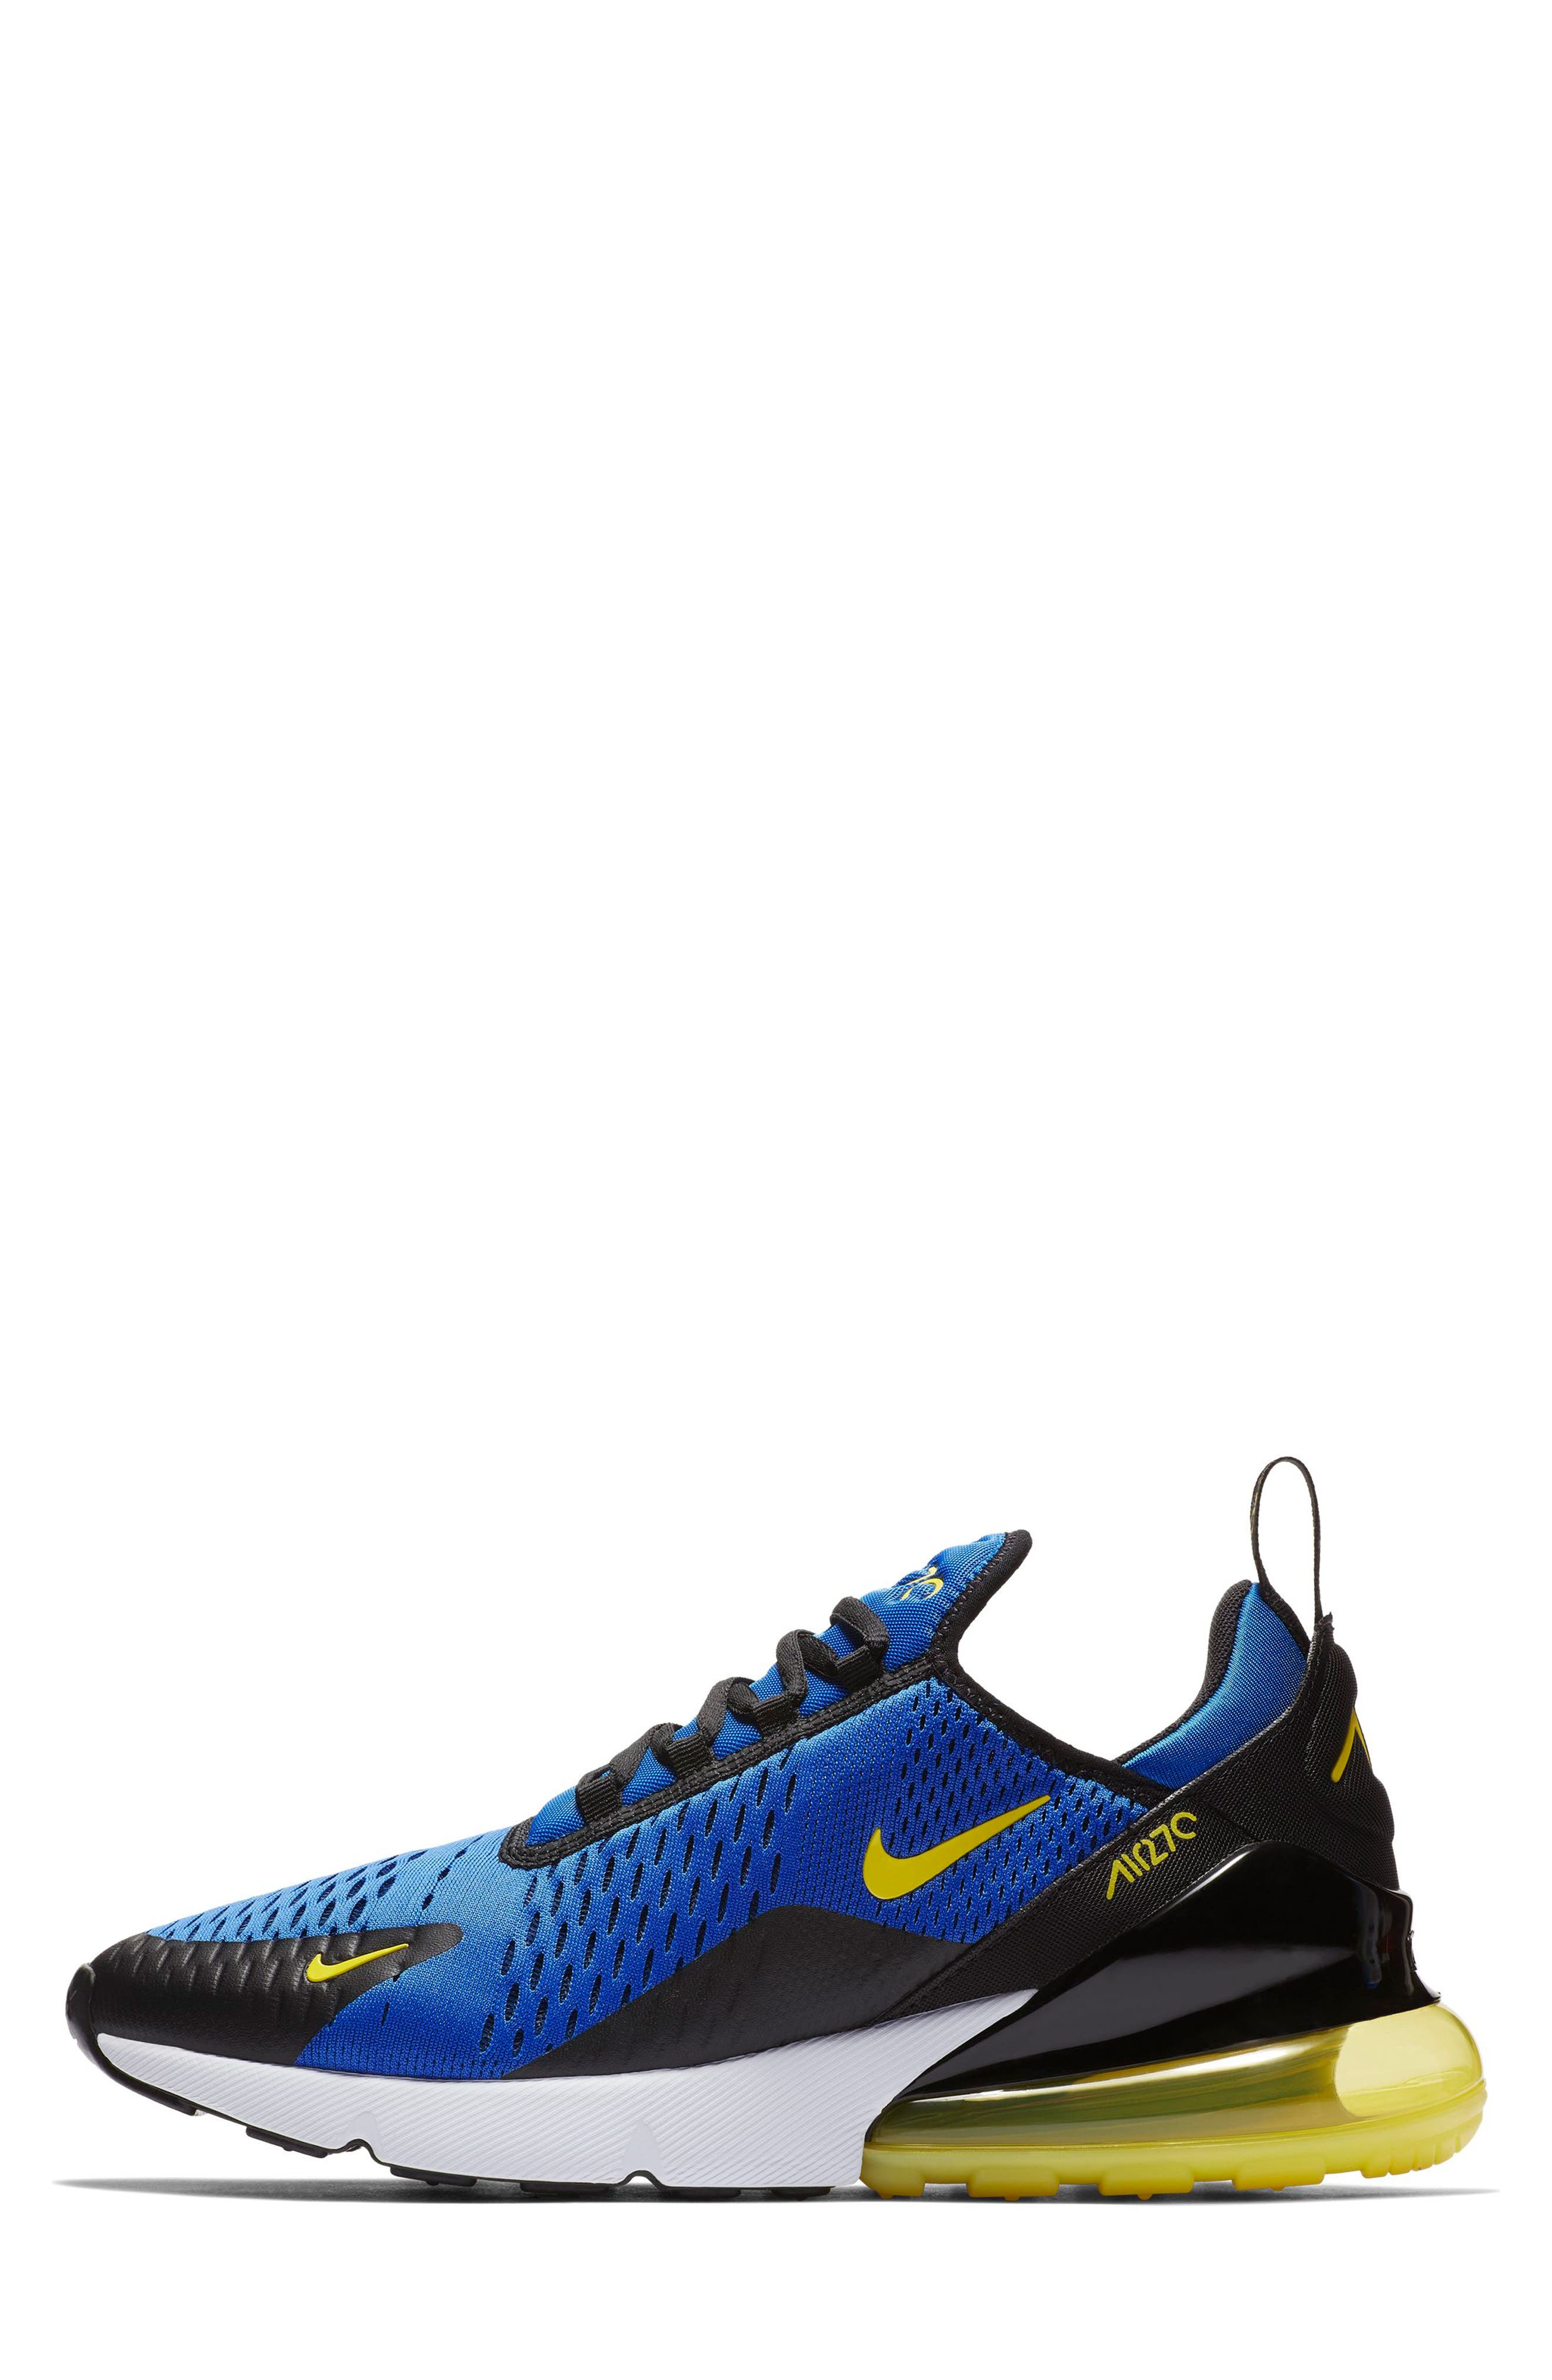 Air Max 270 Sneaker,                             Alternate thumbnail 6, color,                             GAME ROYAL/ WHITE/ BLACK